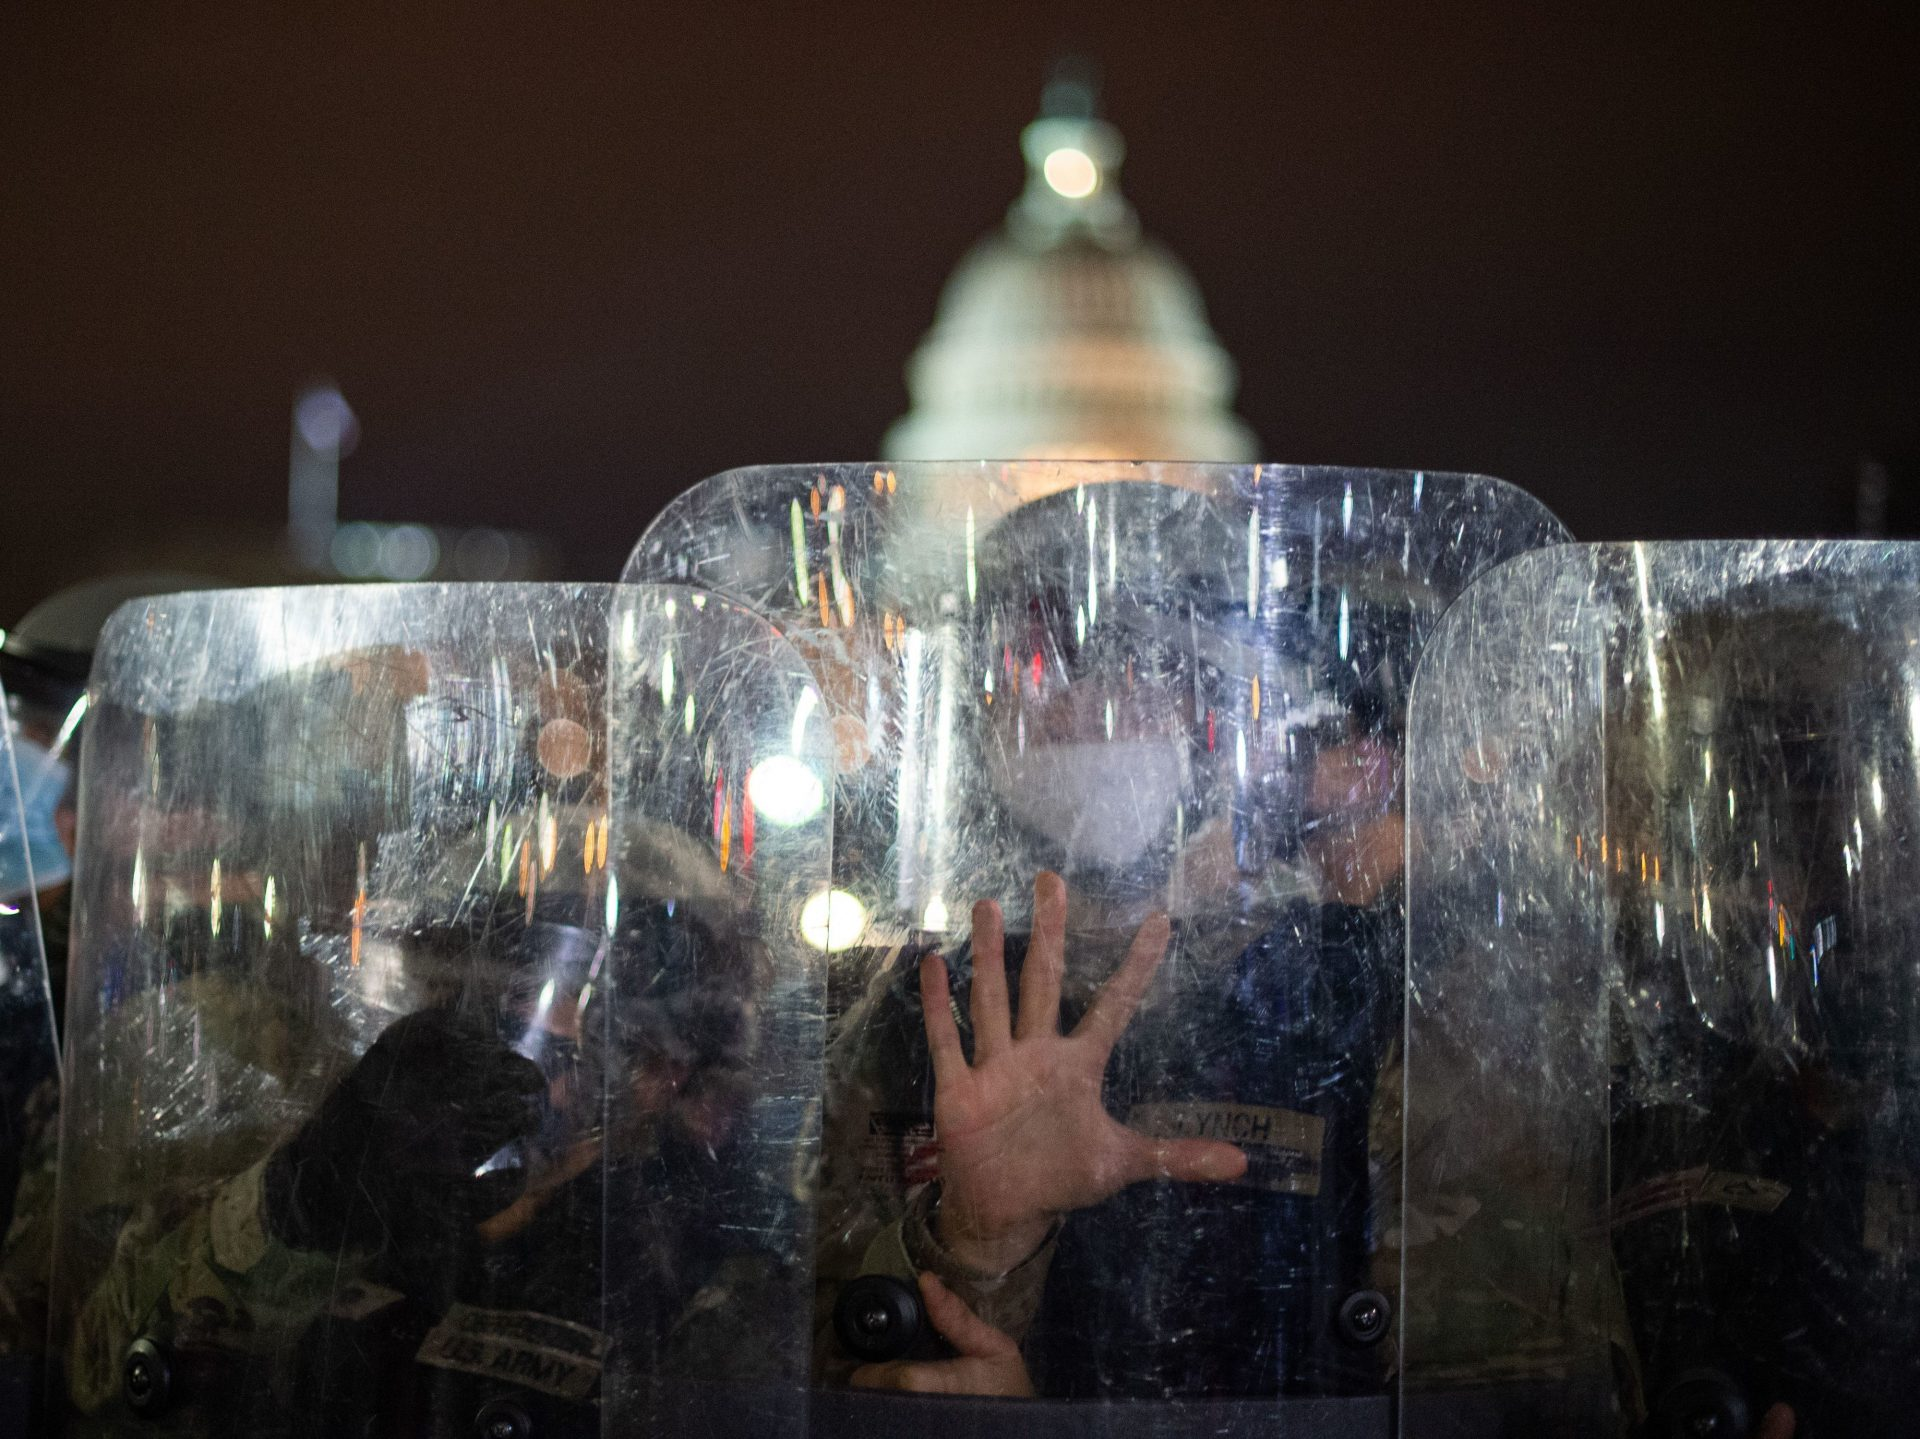 National Guard troops are seen behind shields as they clear a street from protestors outside the Capitol building on January 6, 2021 in Washington, DC.